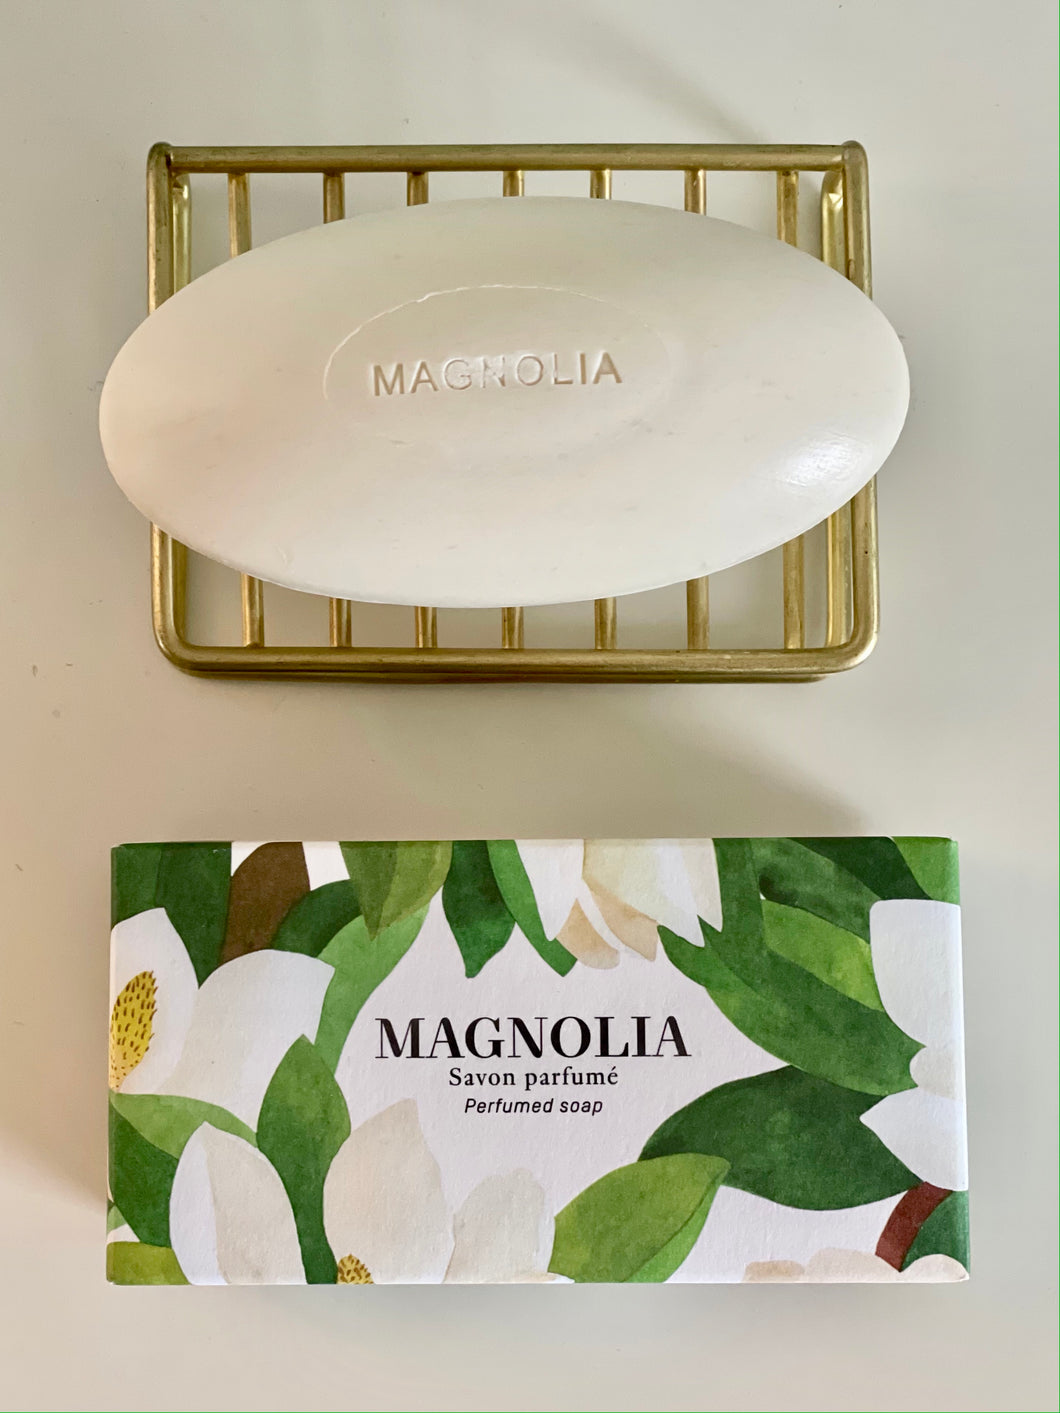 Magnolia soap pebble soap